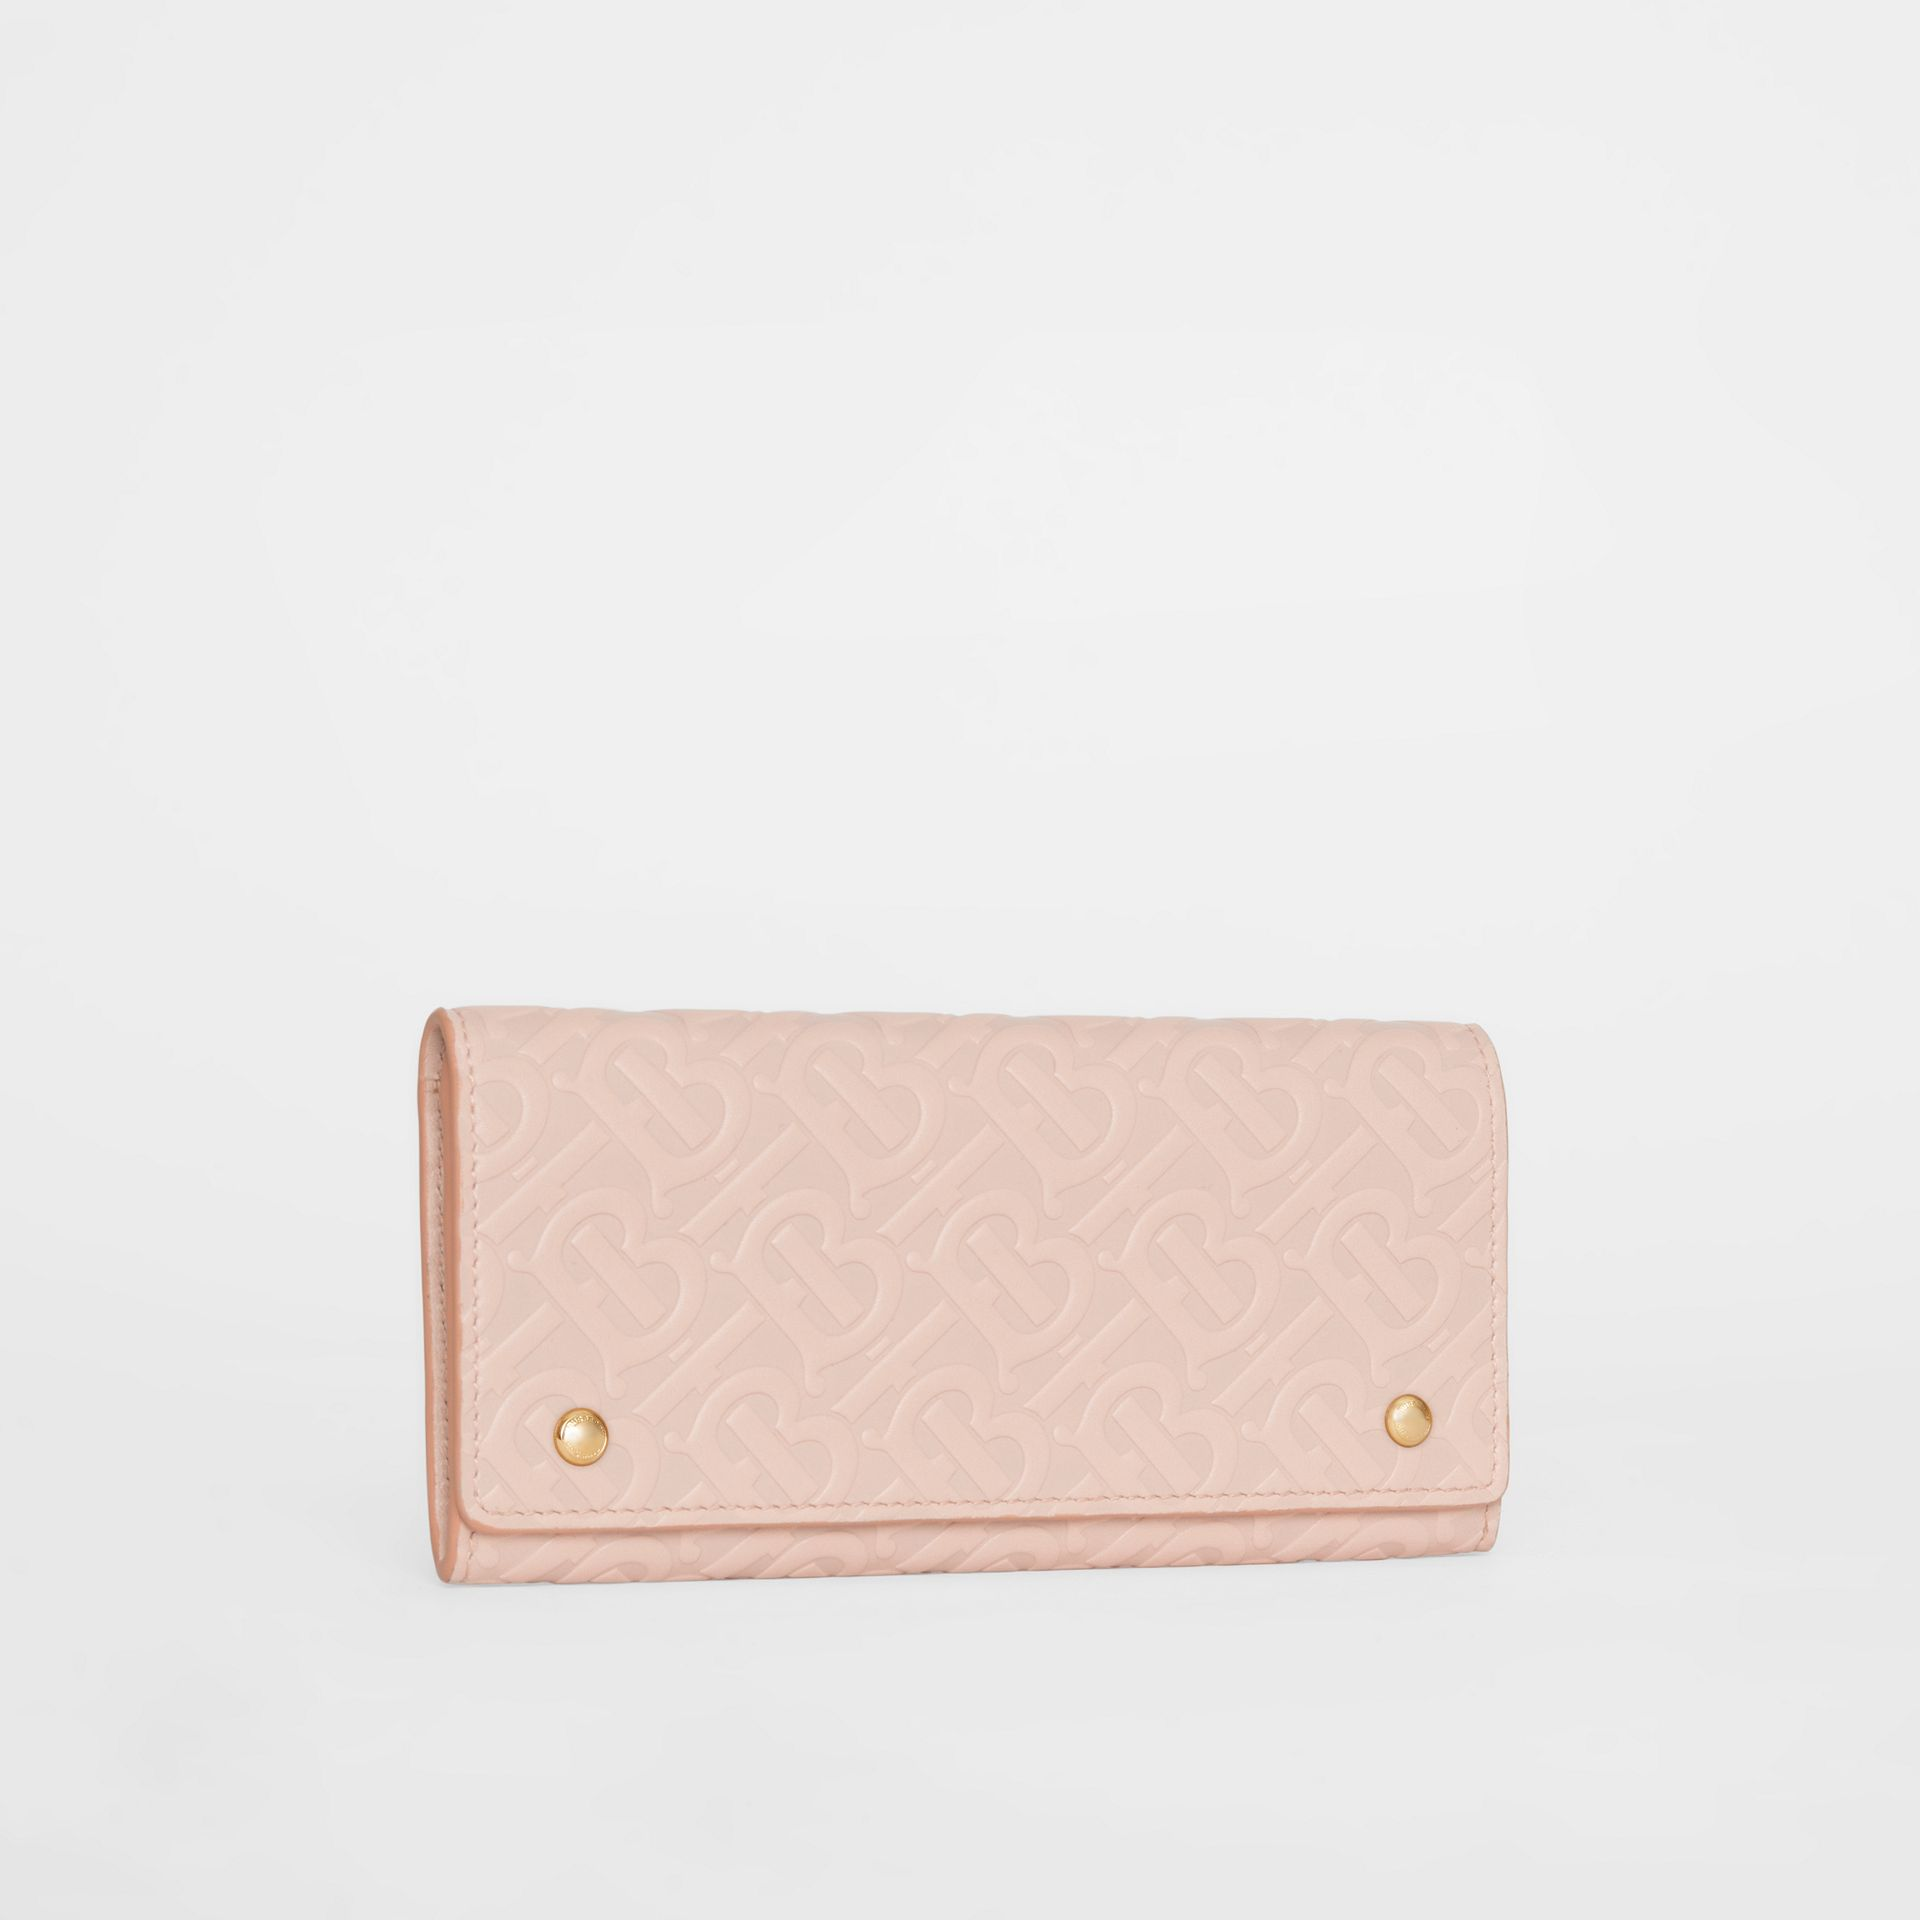 Monogram Leather Continental Wallet in Rose Beige - Women | Burberry - gallery image 3